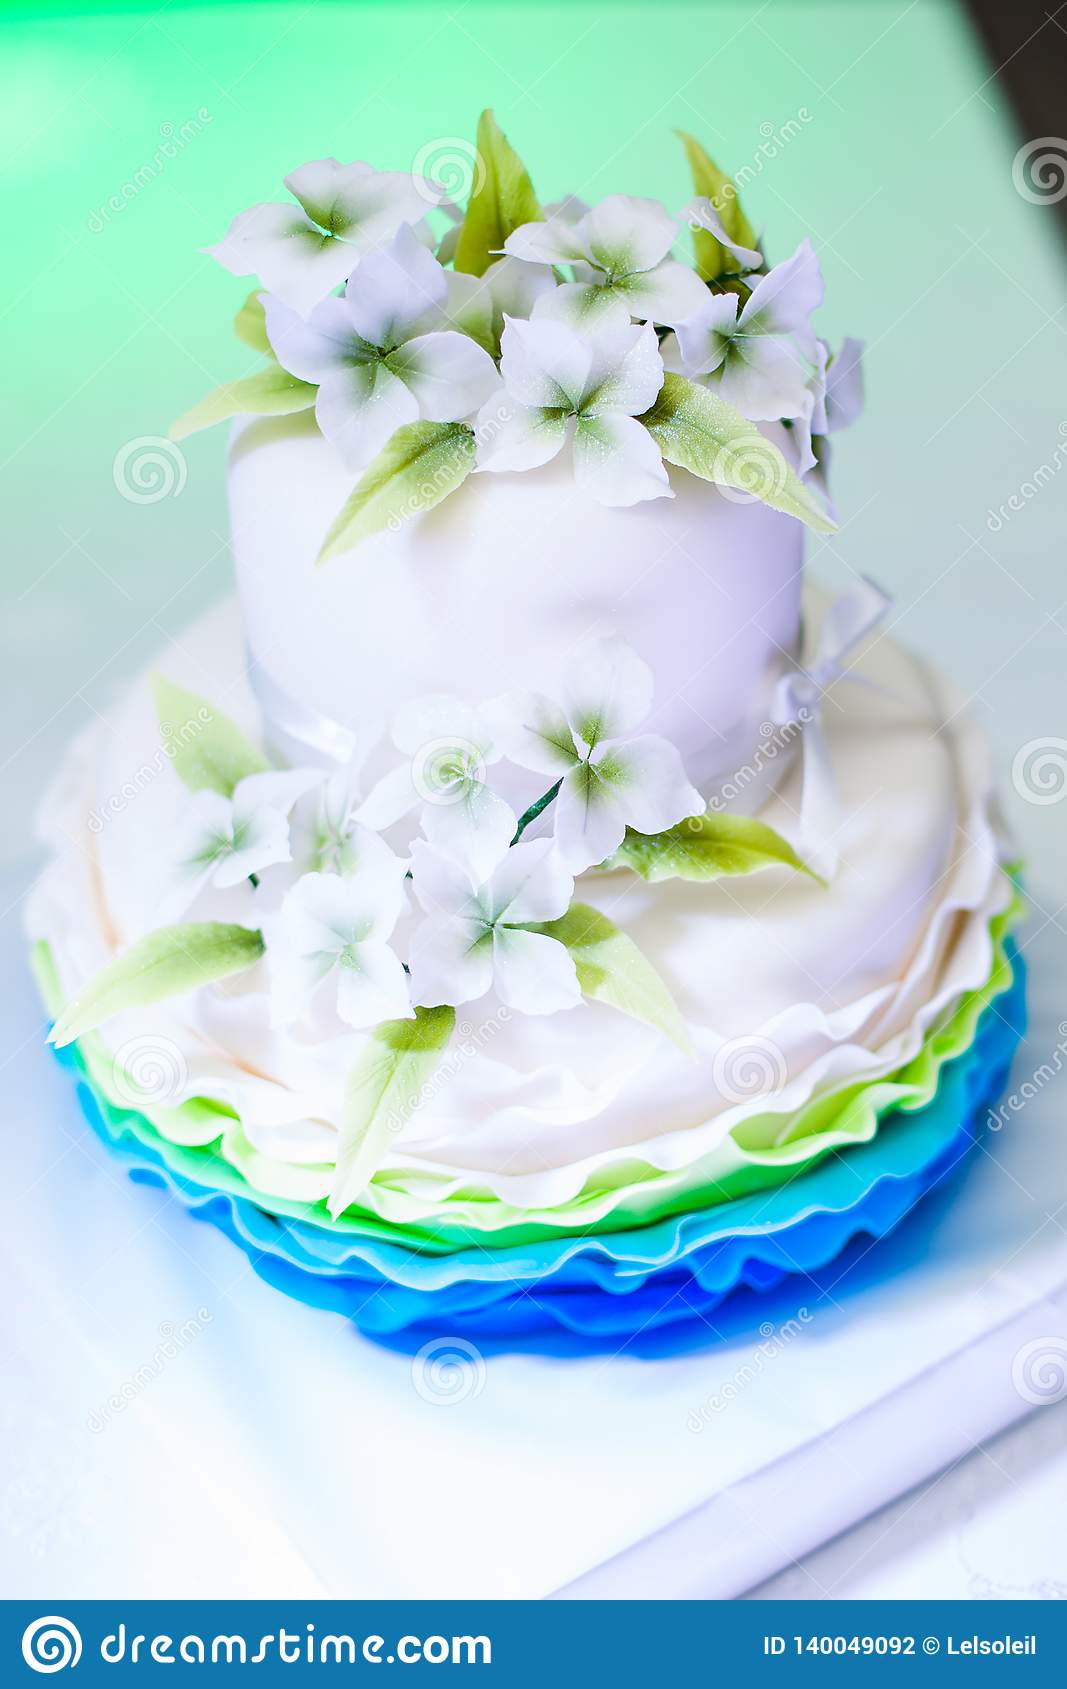 White And Blue Birthday Cake With Nice Flowers For Girl Decorations Party